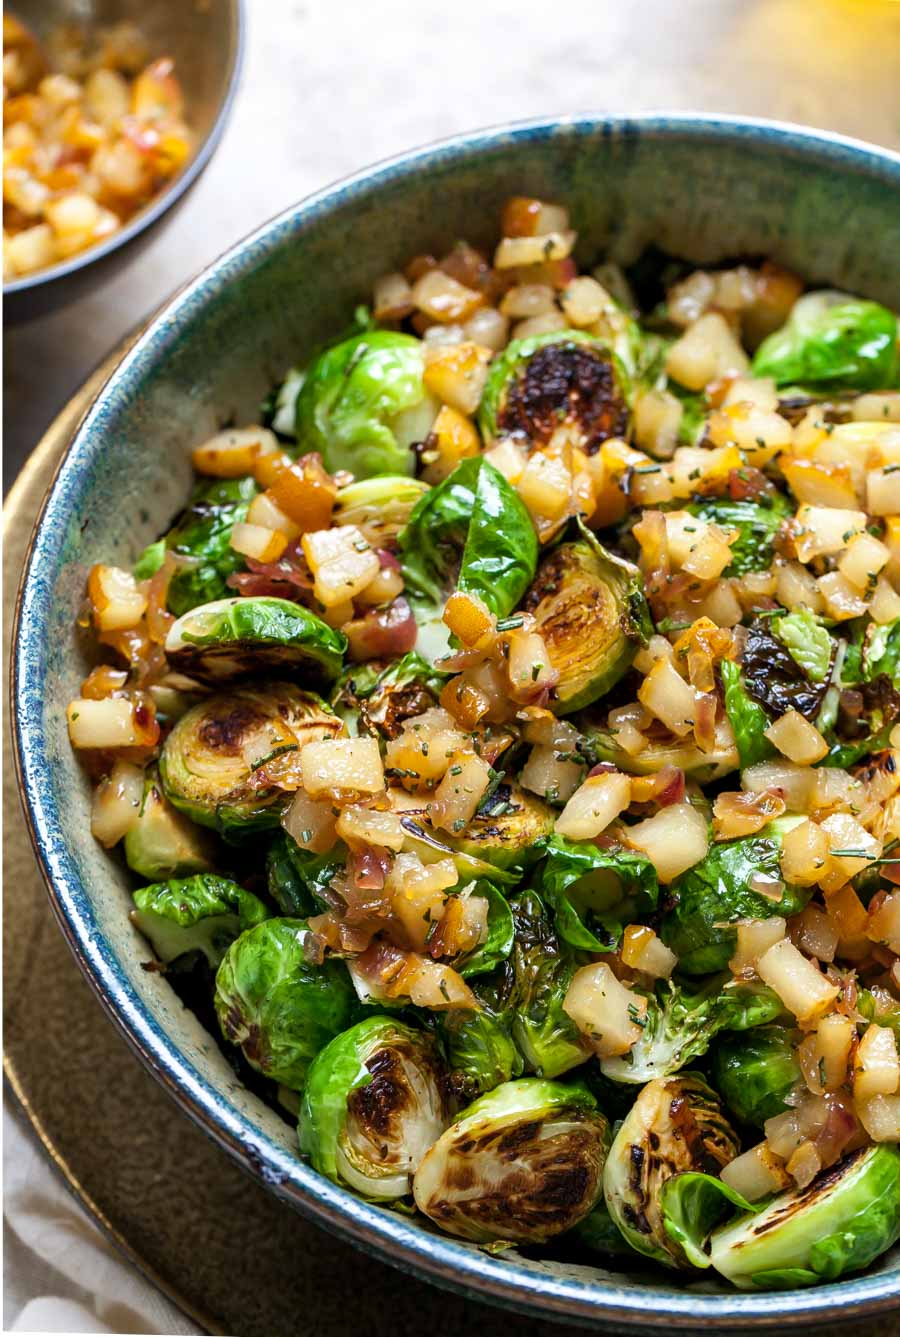 Simple Veggie Side Dish for Holiday Entertaining or Weeknight Dinner